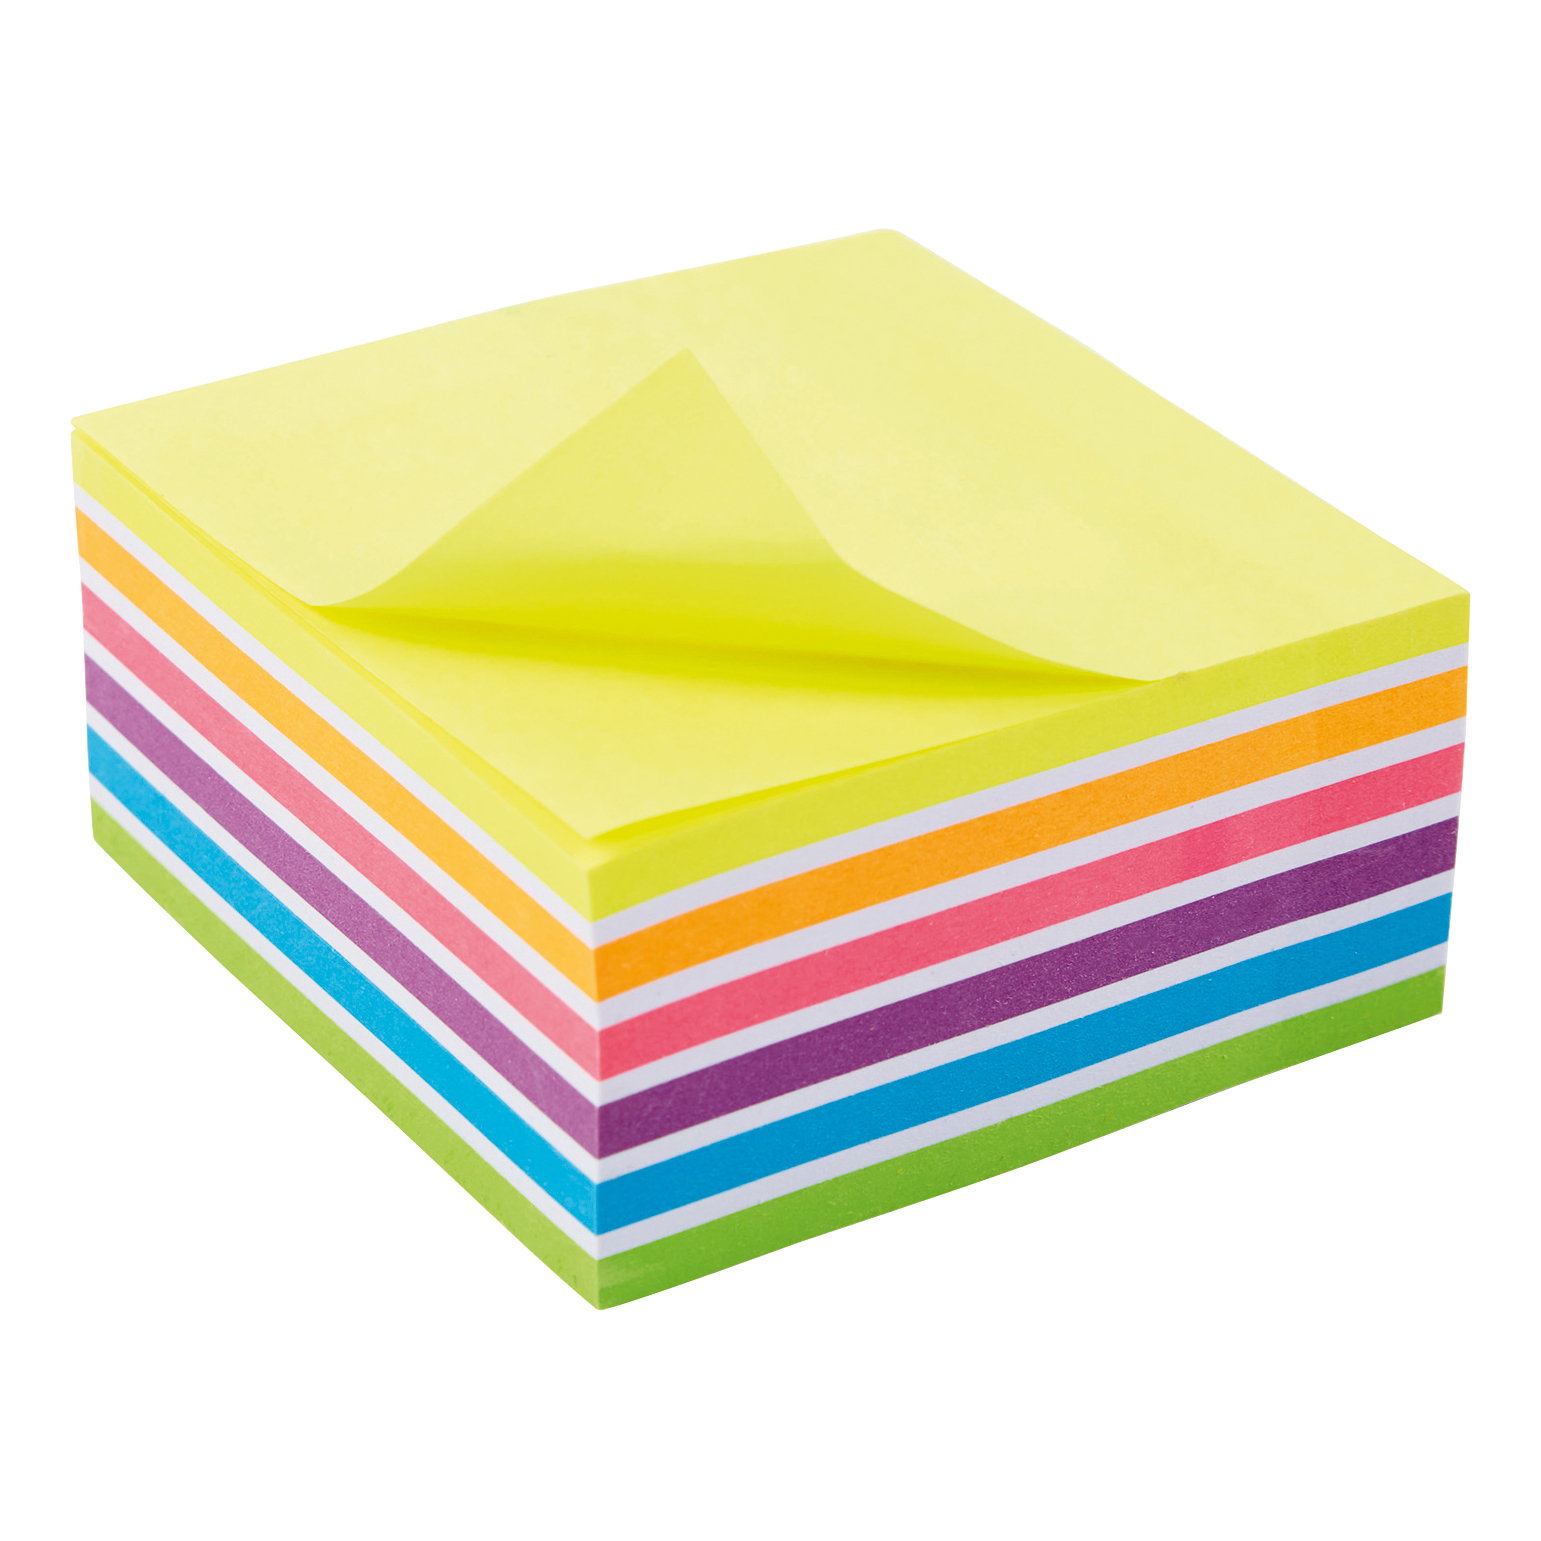 Self adhesive note paper 5 Star Office Re-Move Sticky Notes Rainbow Cube 76x76mm 6 Bright Colours 400 Sheets